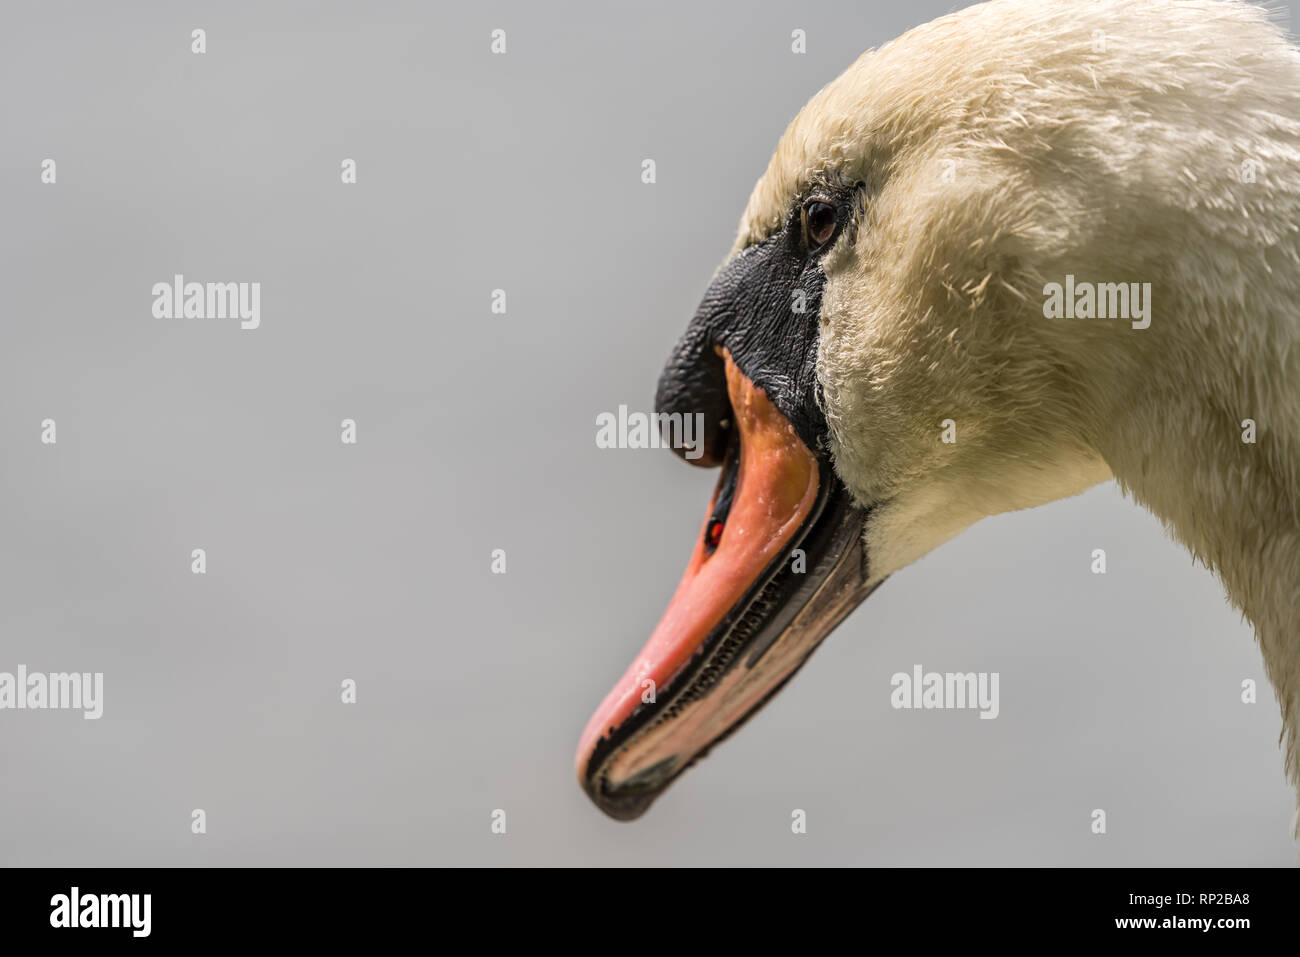 White swan - close up of  swans face with a clear  grey background. Stock Photo